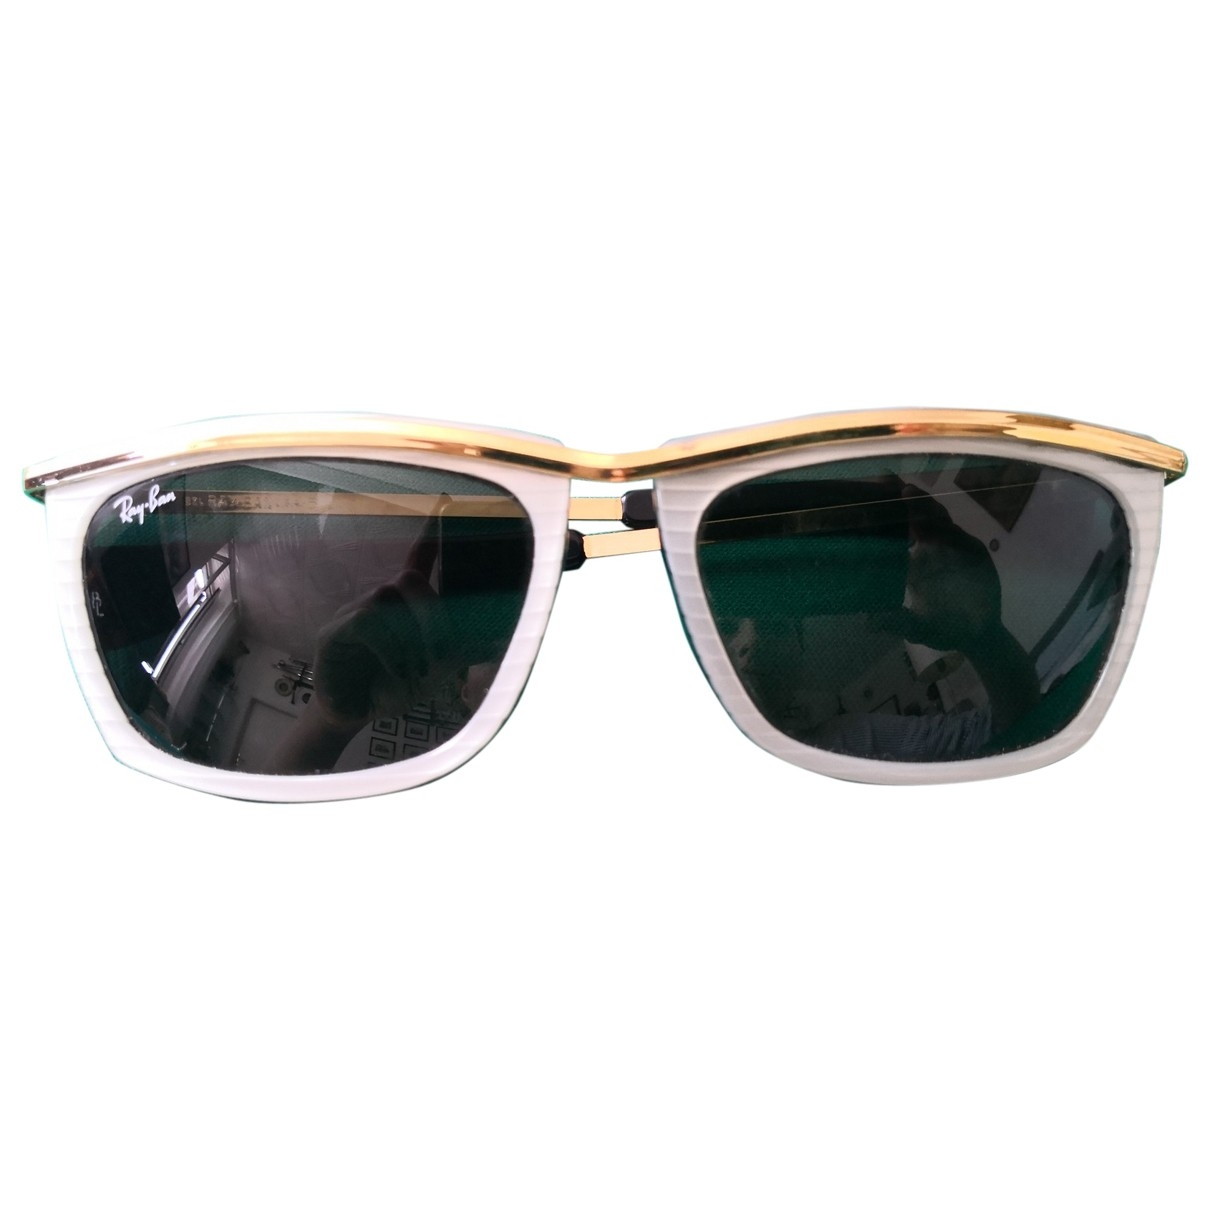 Ray-ban N Metal Sunglasses for Women